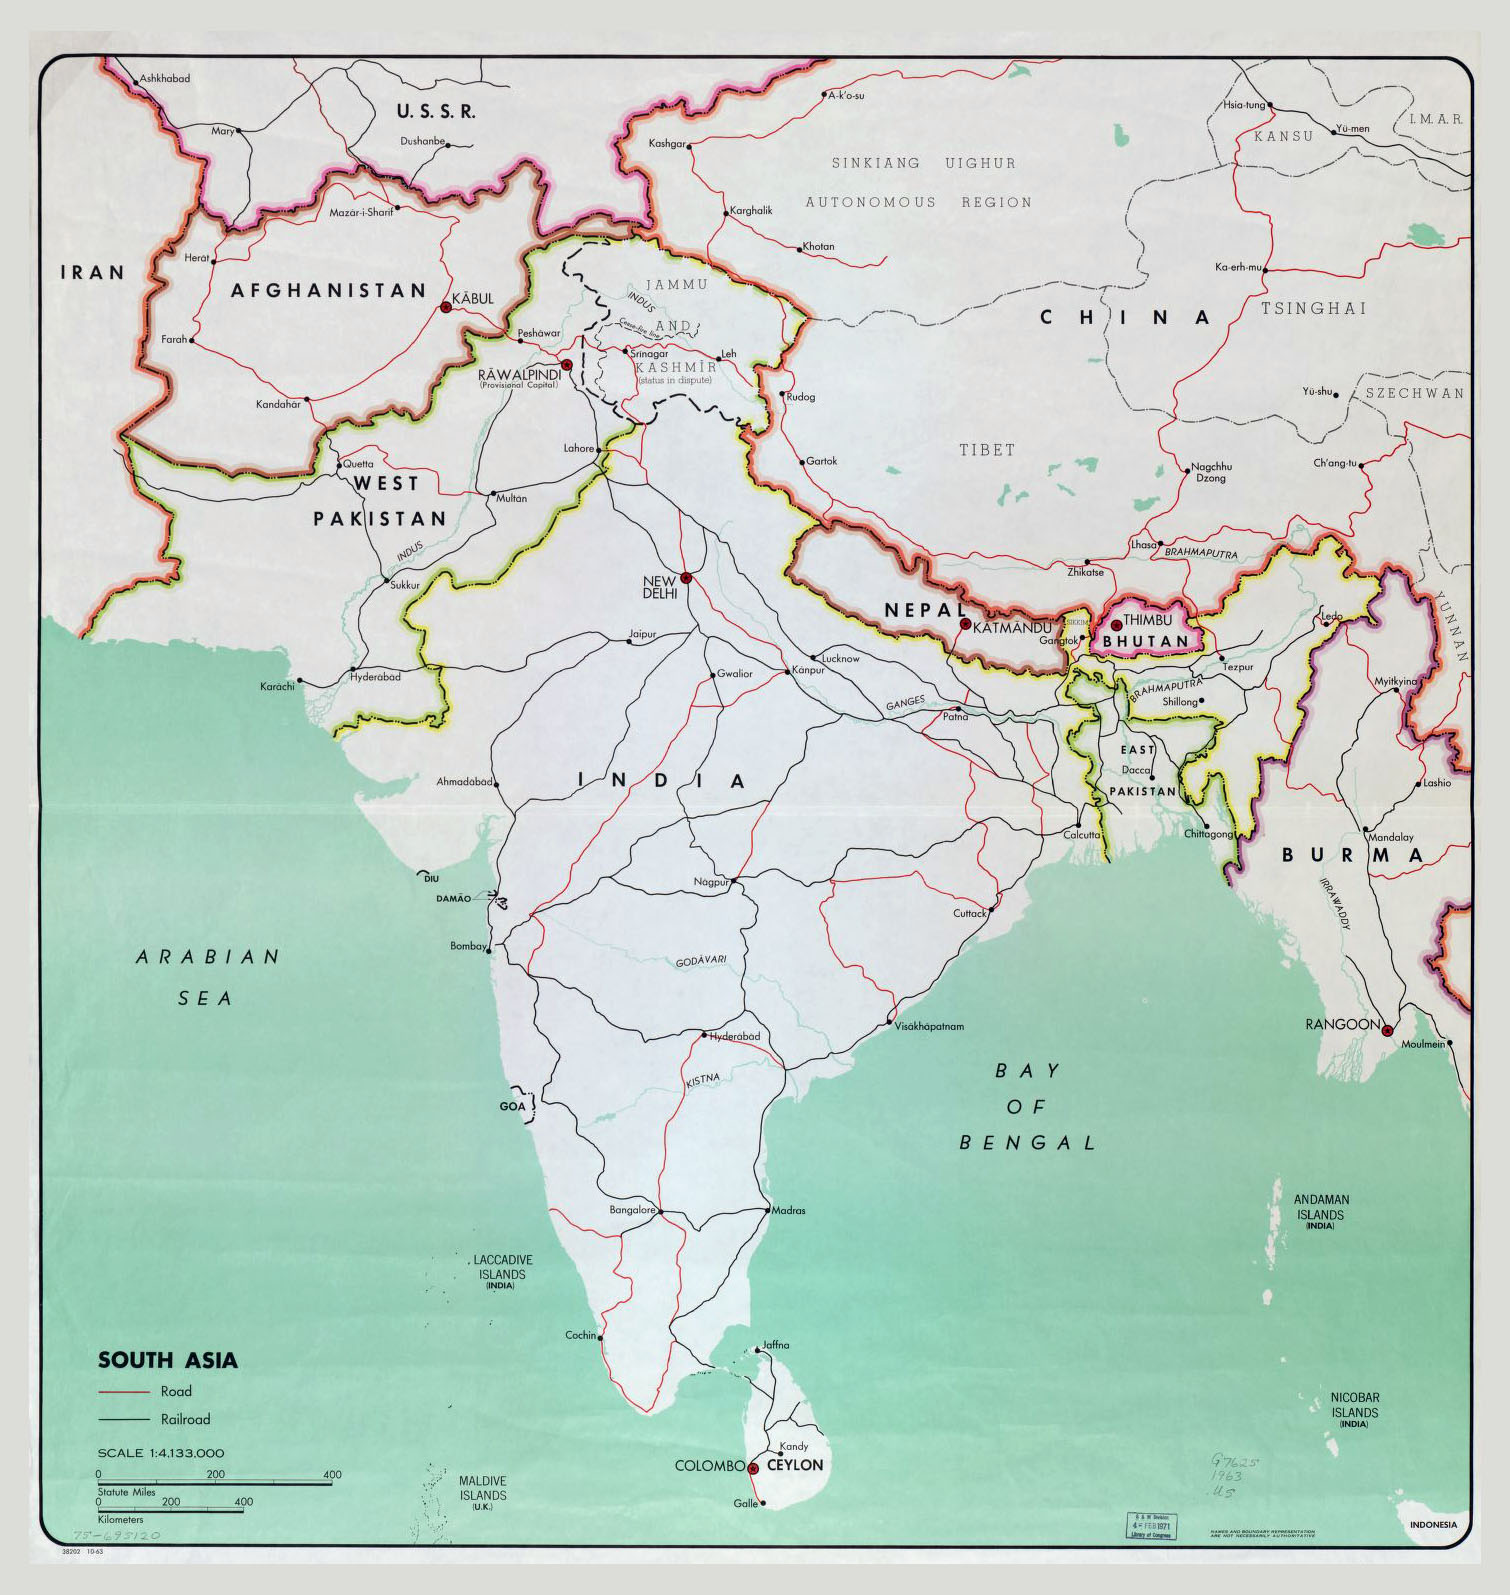 south asia map cities Large Map Of South Asia With Major Cities Roads And Railroads